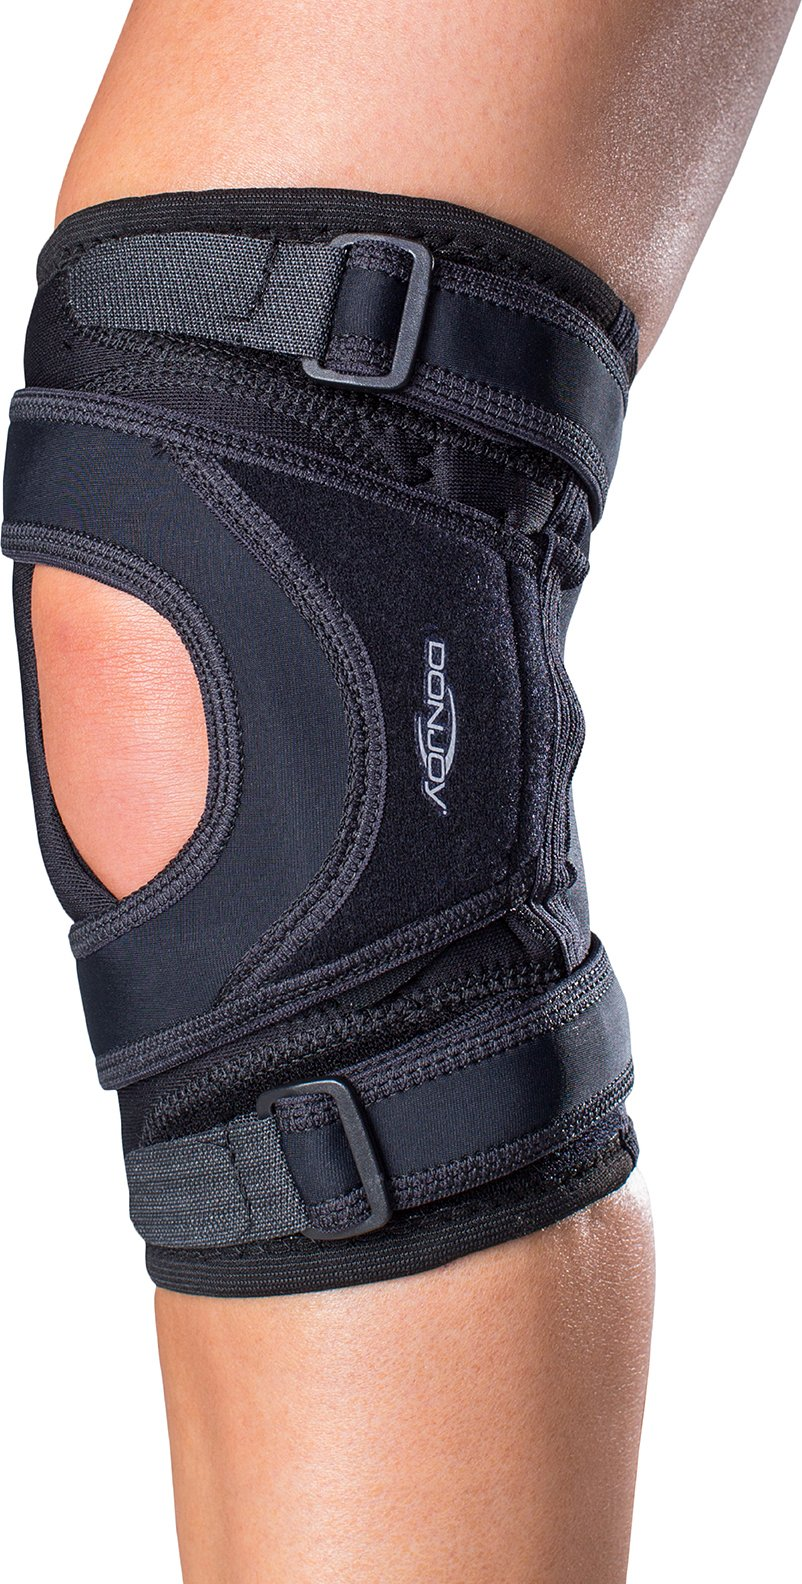 265dc5be27224c Amazon.com: DonJoy Tru-Pull Lite Knee Support Brace: Right Leg ...